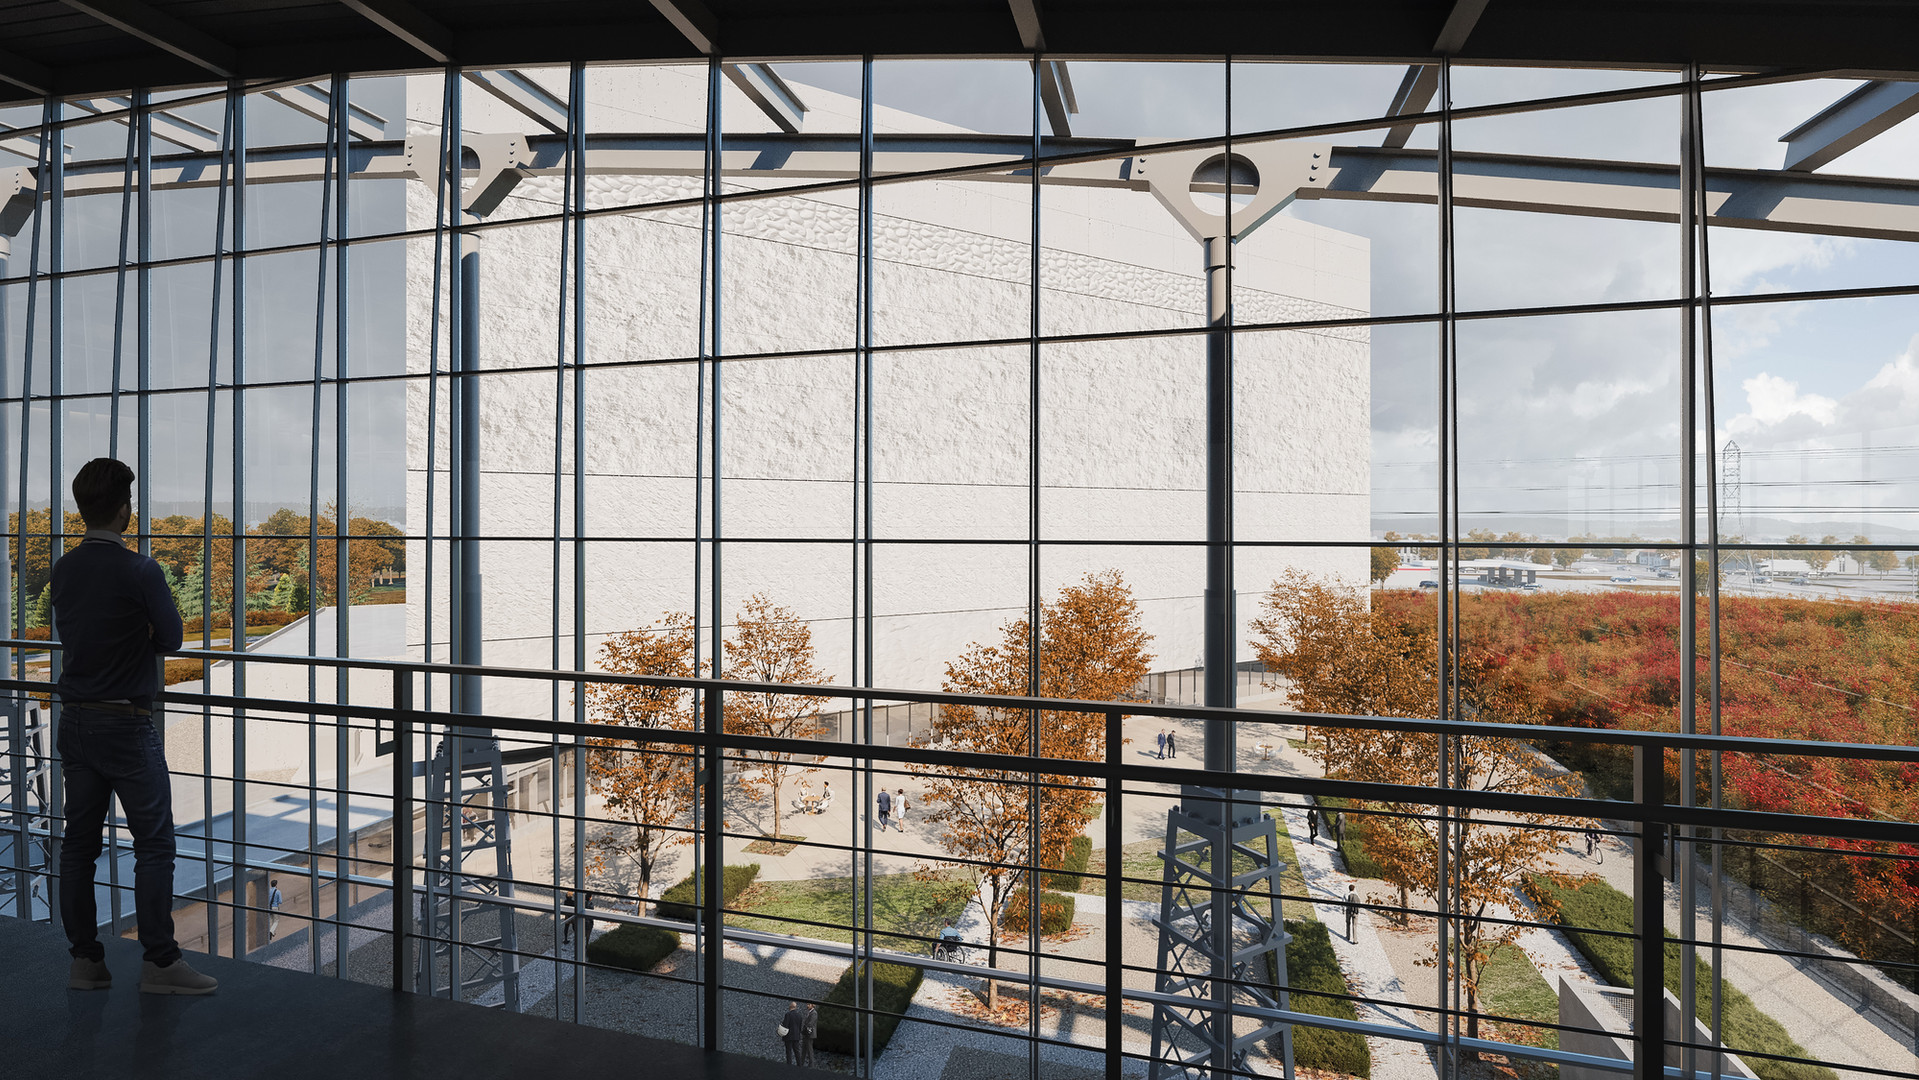 View from Level 5 work spaces in the Existing Preservation Centre towards Courtyard and Southeast Façade of the New Facility.